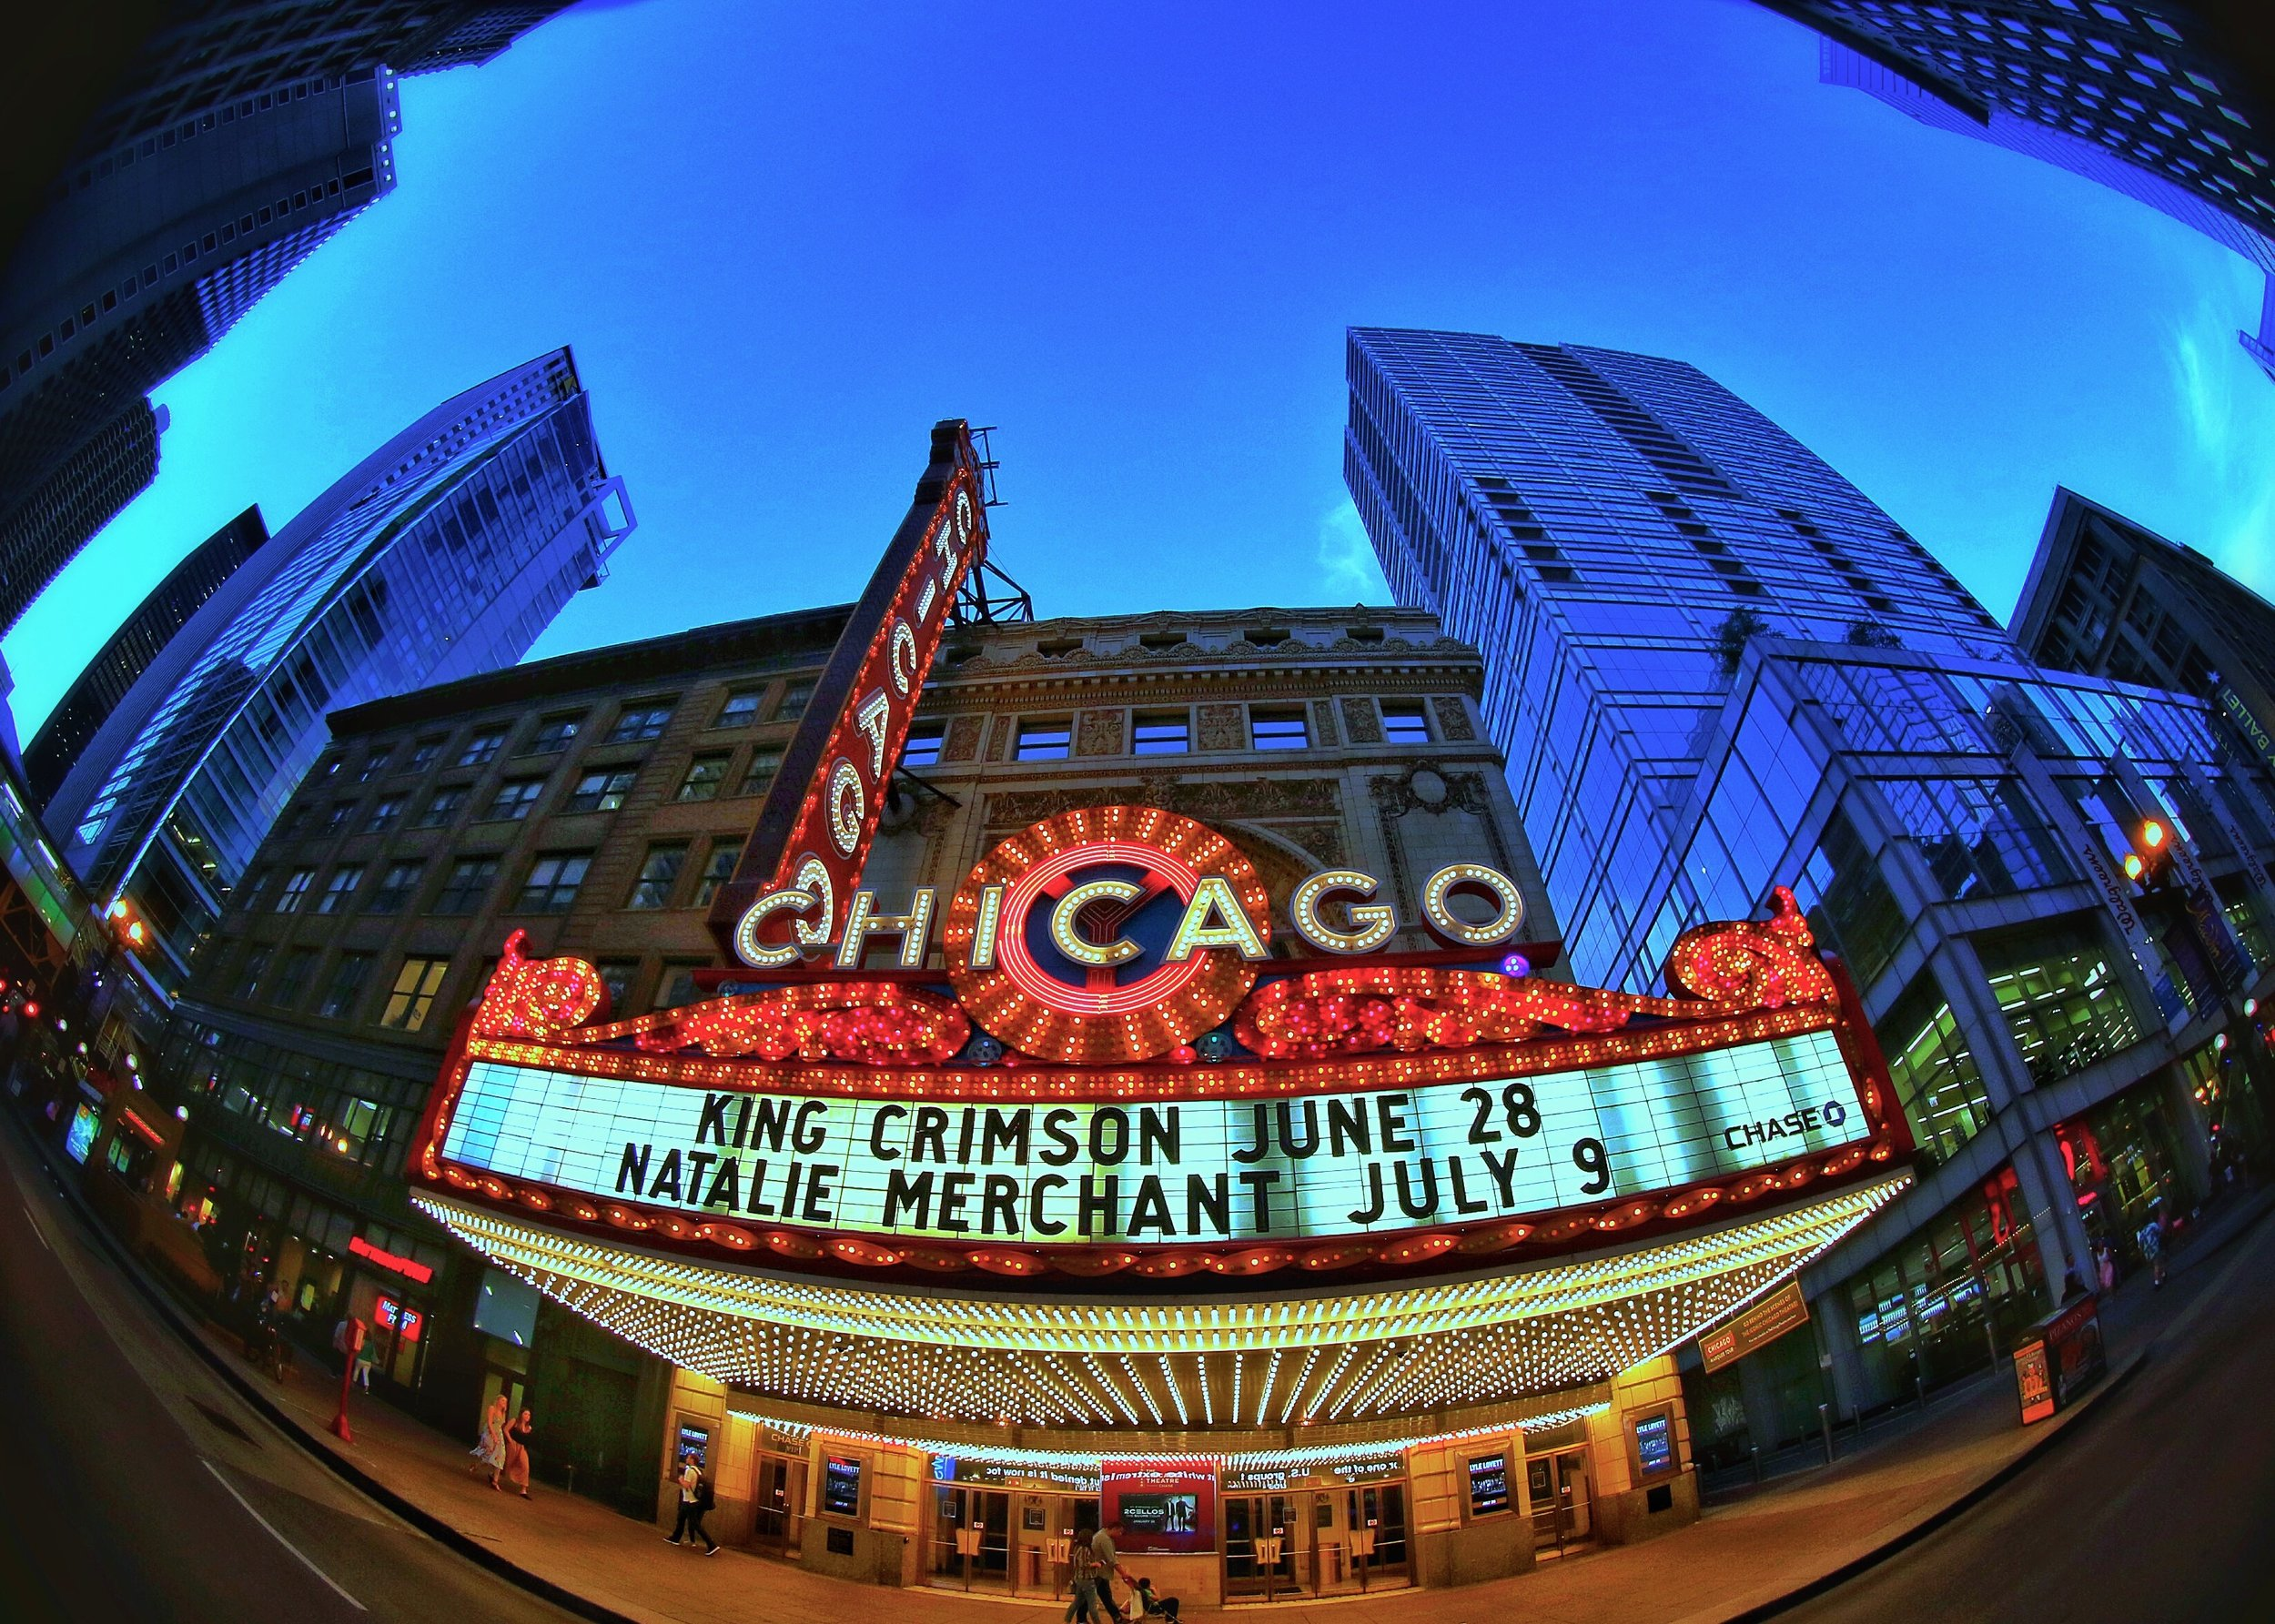 Out of Chicago 2017 - Fisheye Perspective